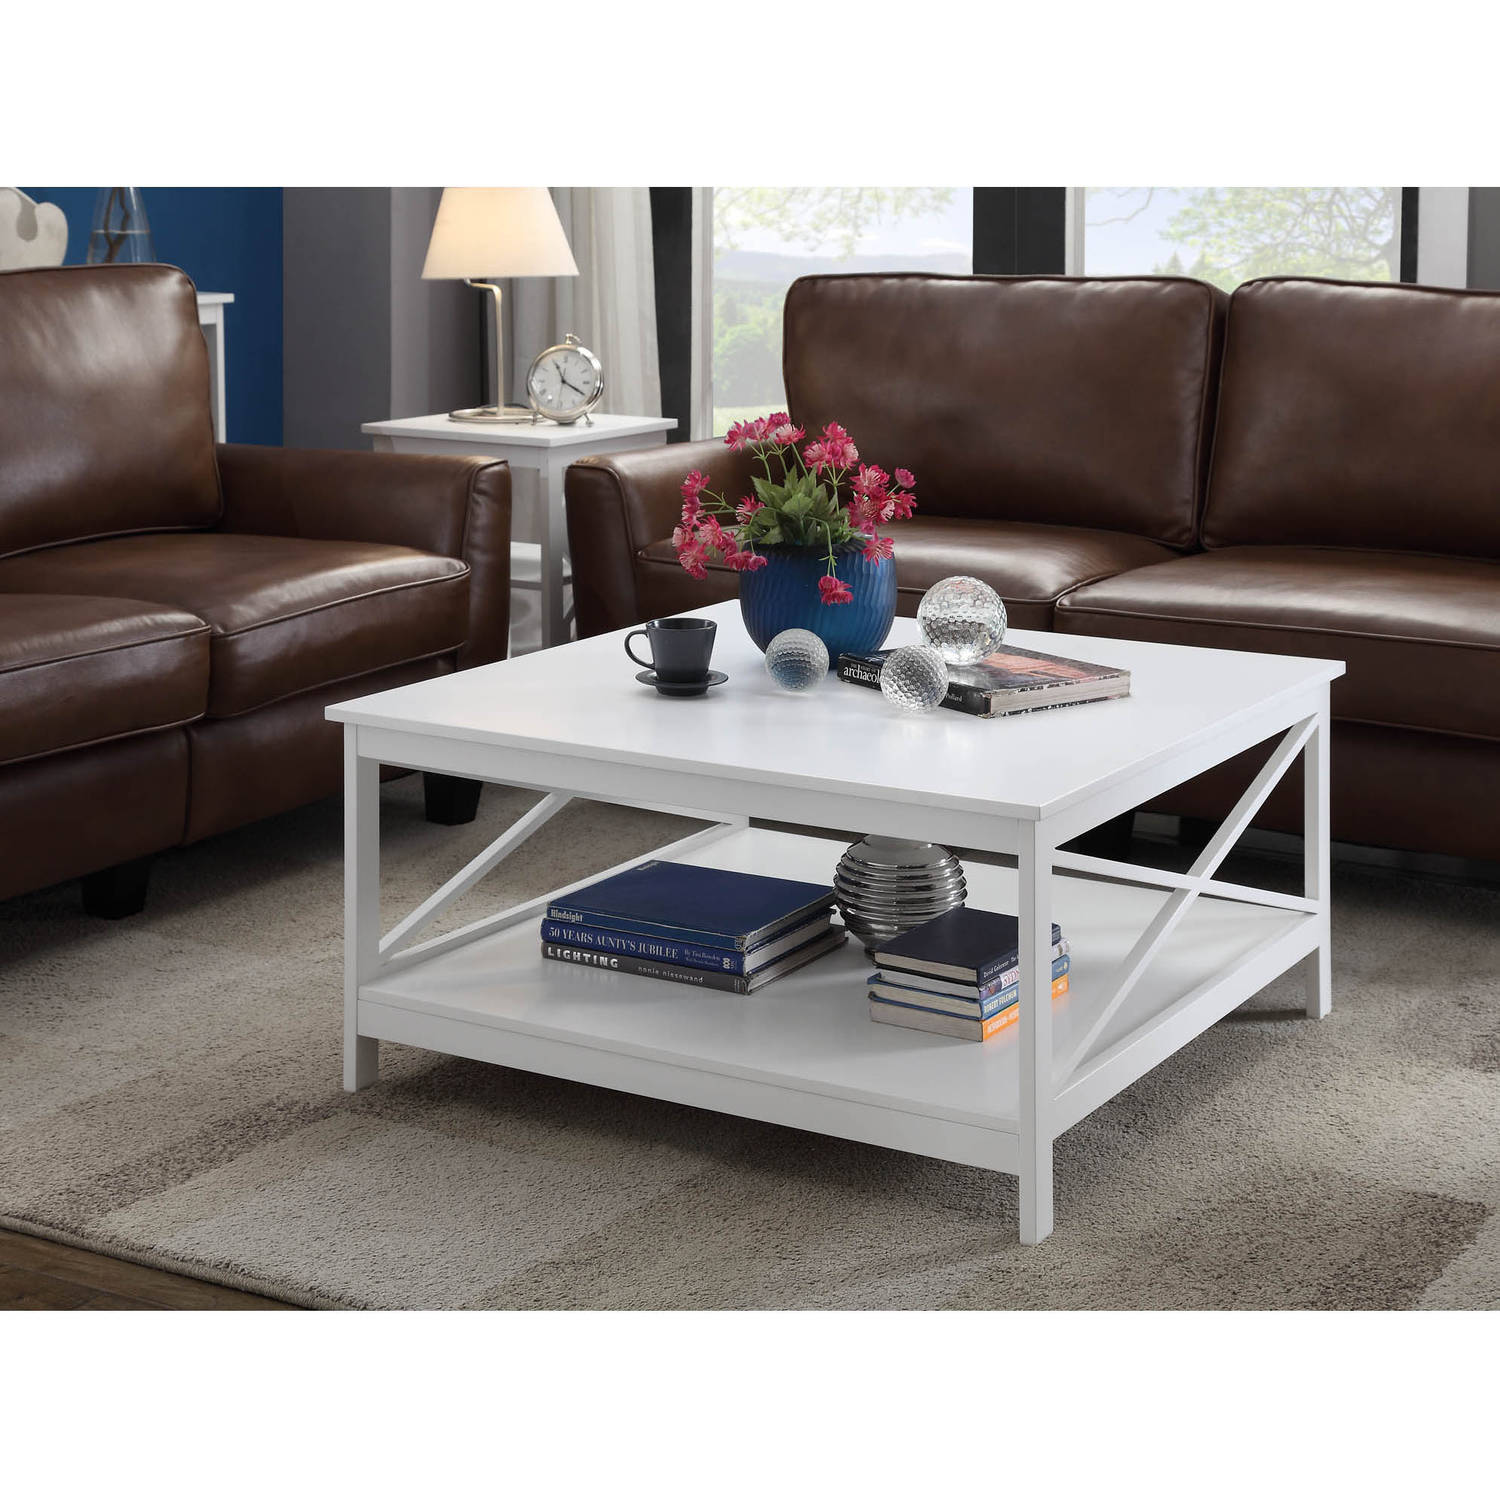 "Convenience Concepts Oxford 36"" Square Coffee Table, Mutliple Colors by Generic"